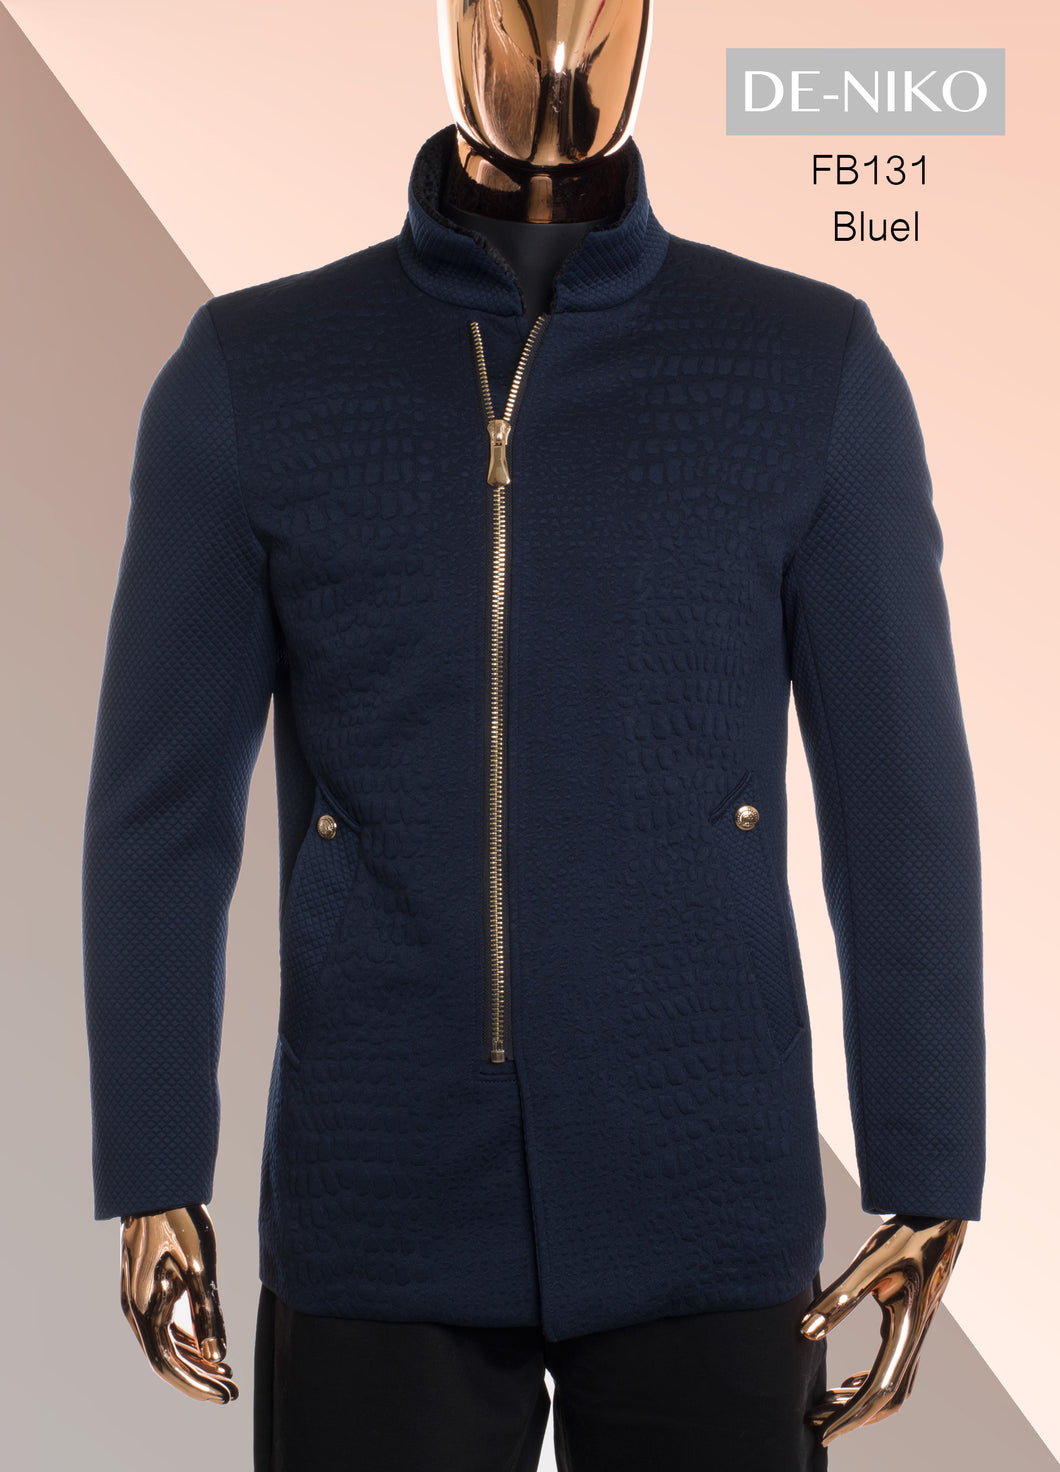 De-Niko Navy Blue Zip Up Textured Wool Dressy Jacket